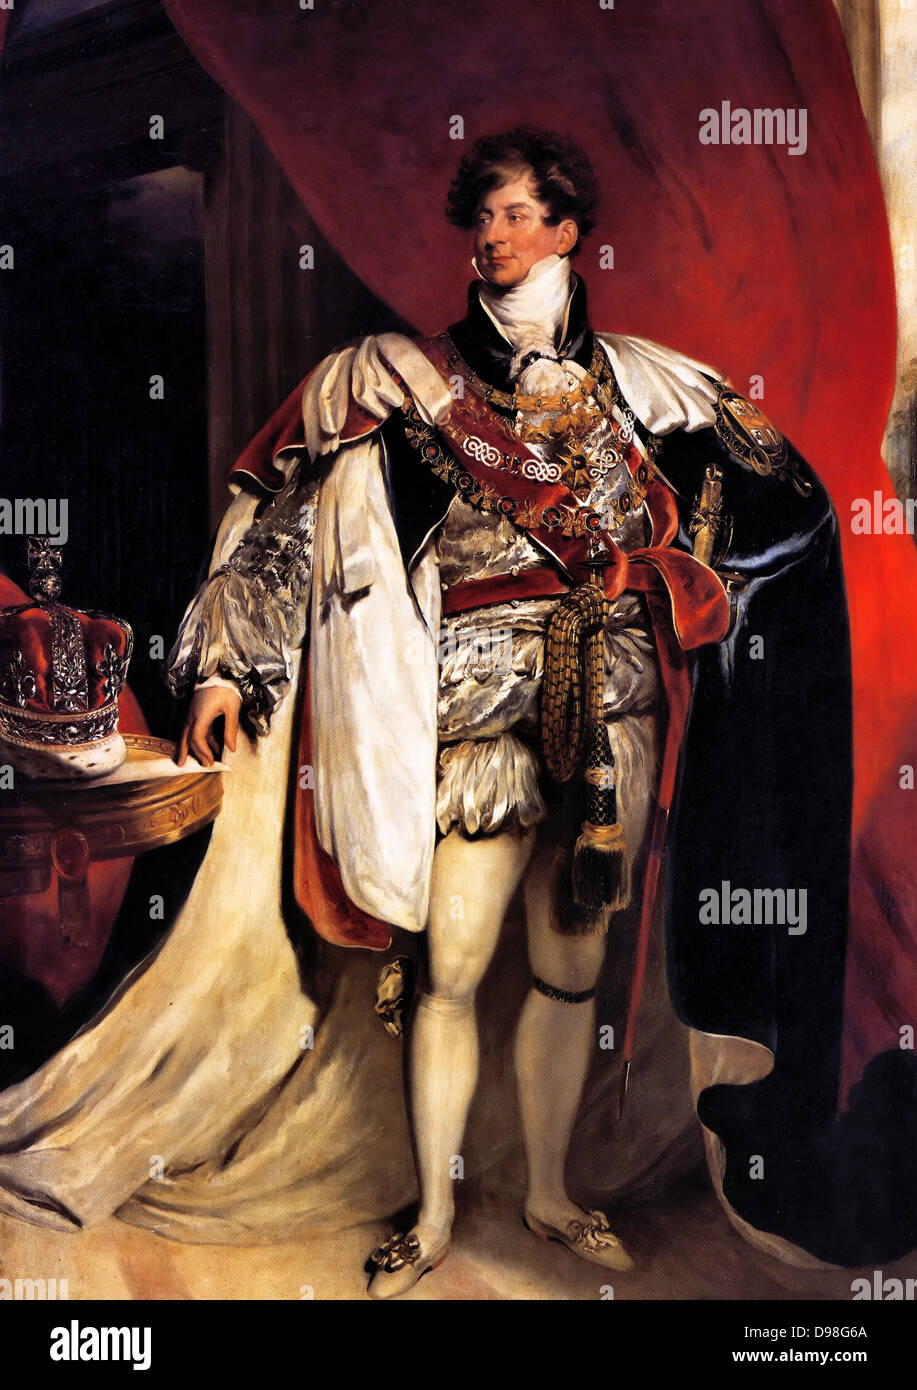 George IV 1762 – 1830, King of Great Britain 1820 - 1830. Portrait as prince Regent by Thomas Lawrence 1822 - Stock Image